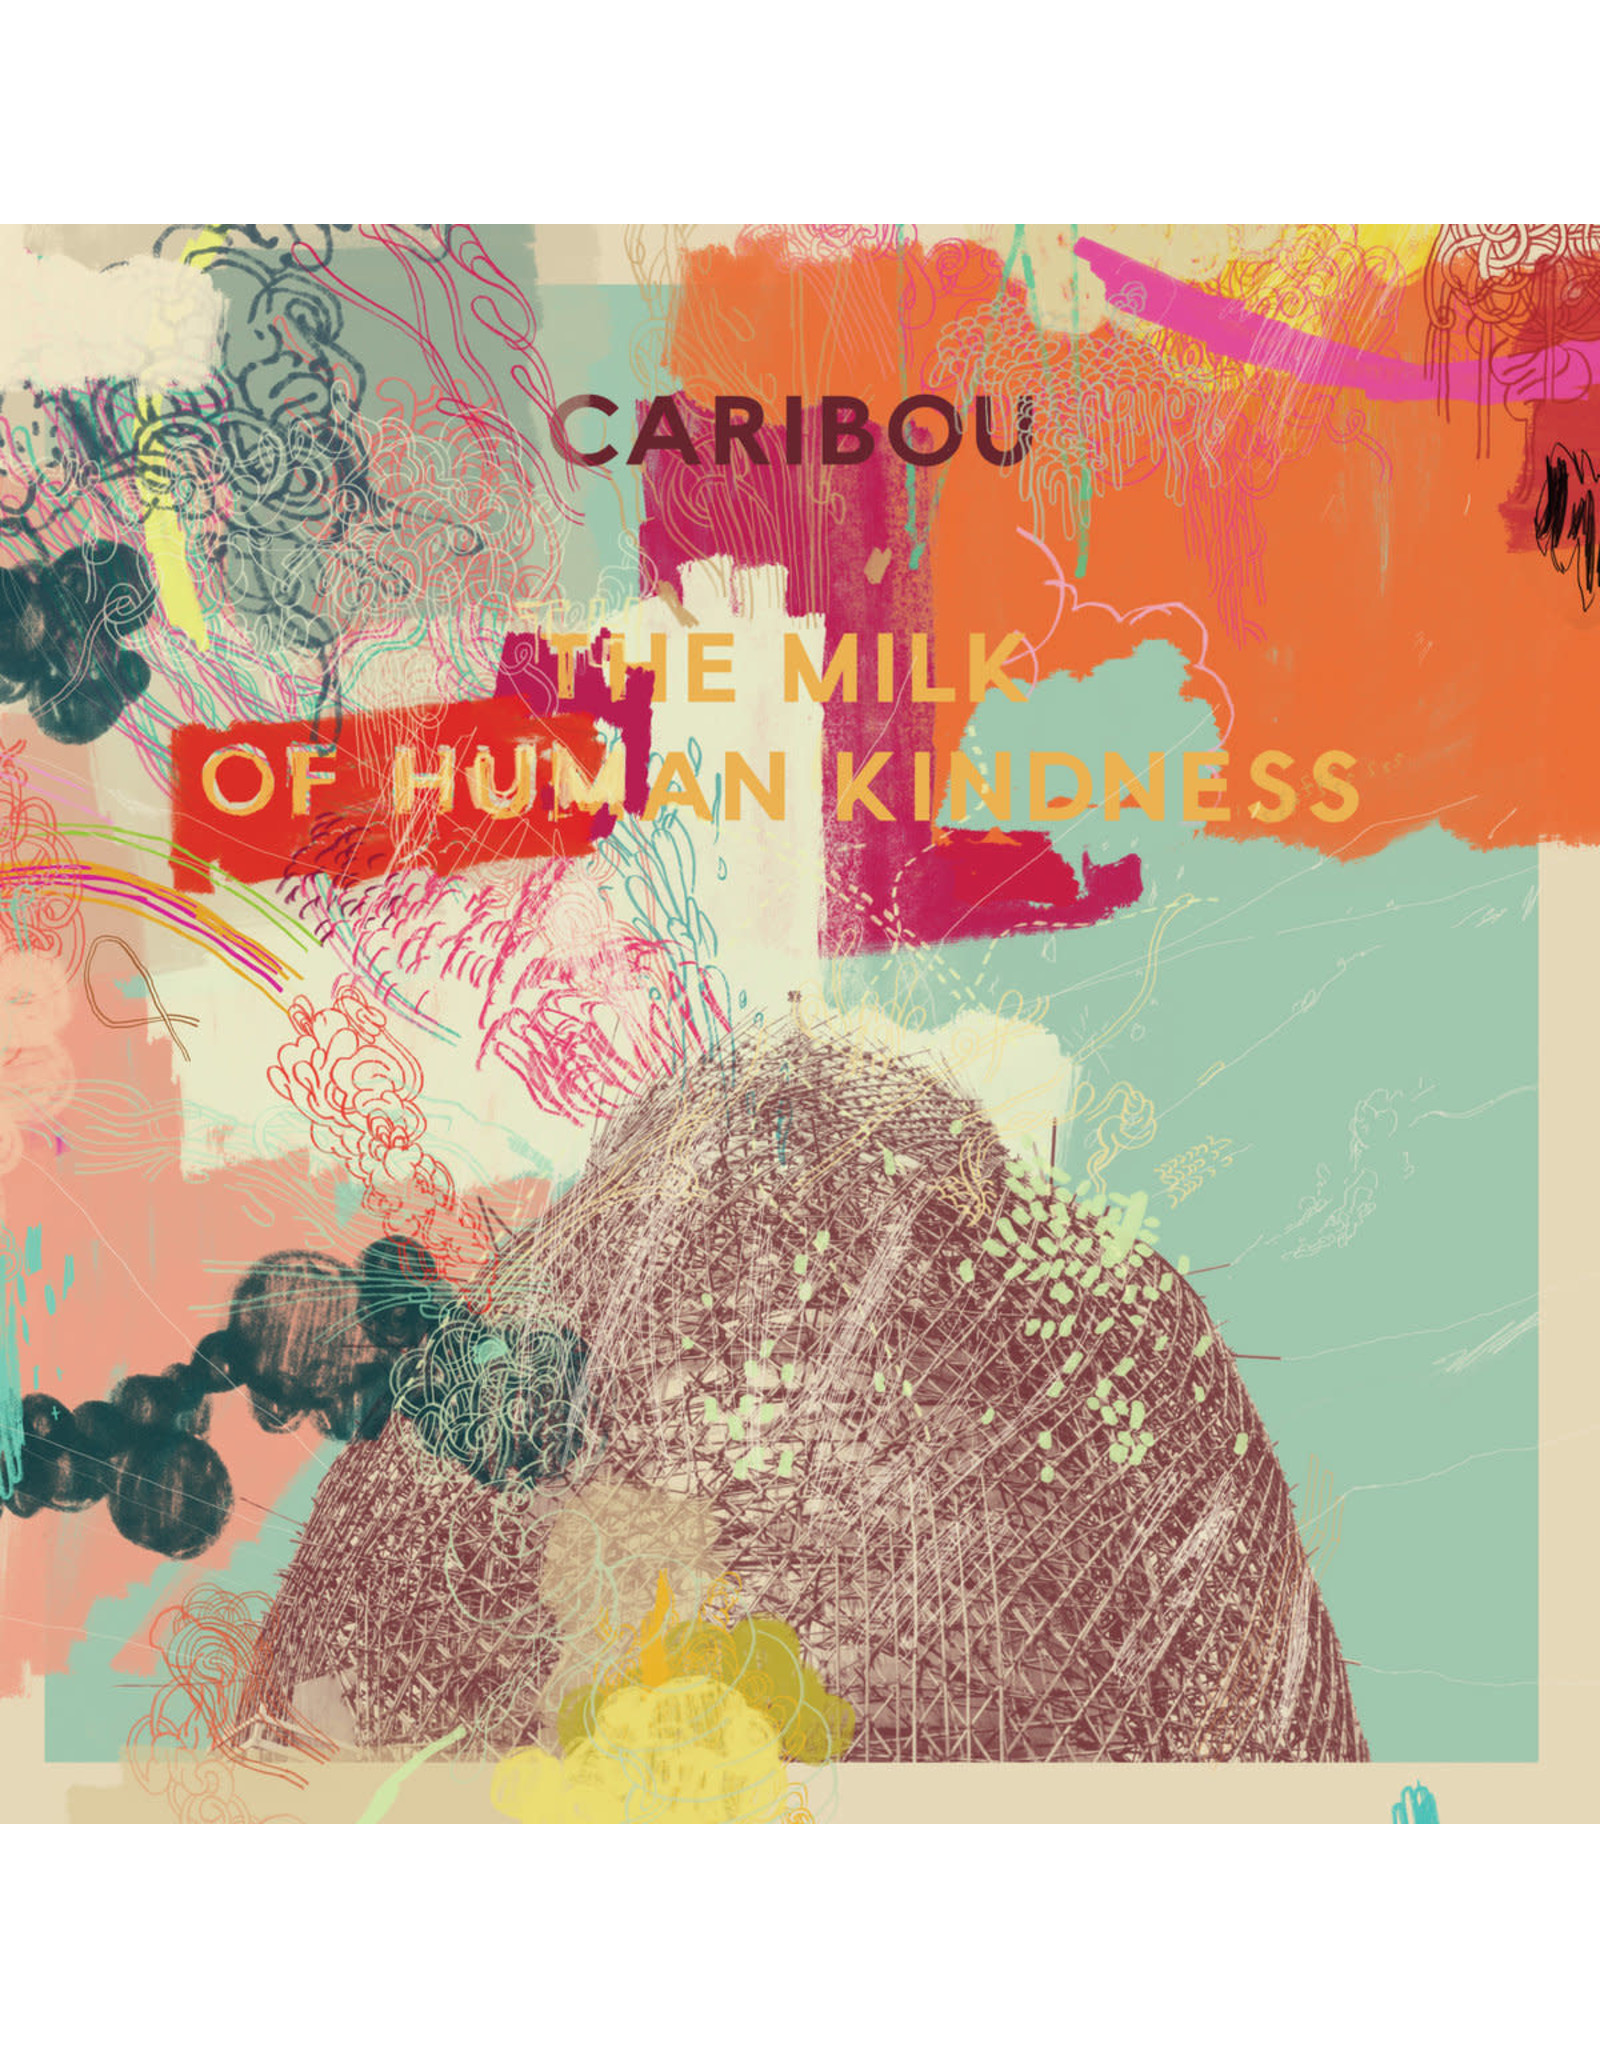 Caribou - The Milk Of Human Kindness (Exclusive Vinyl